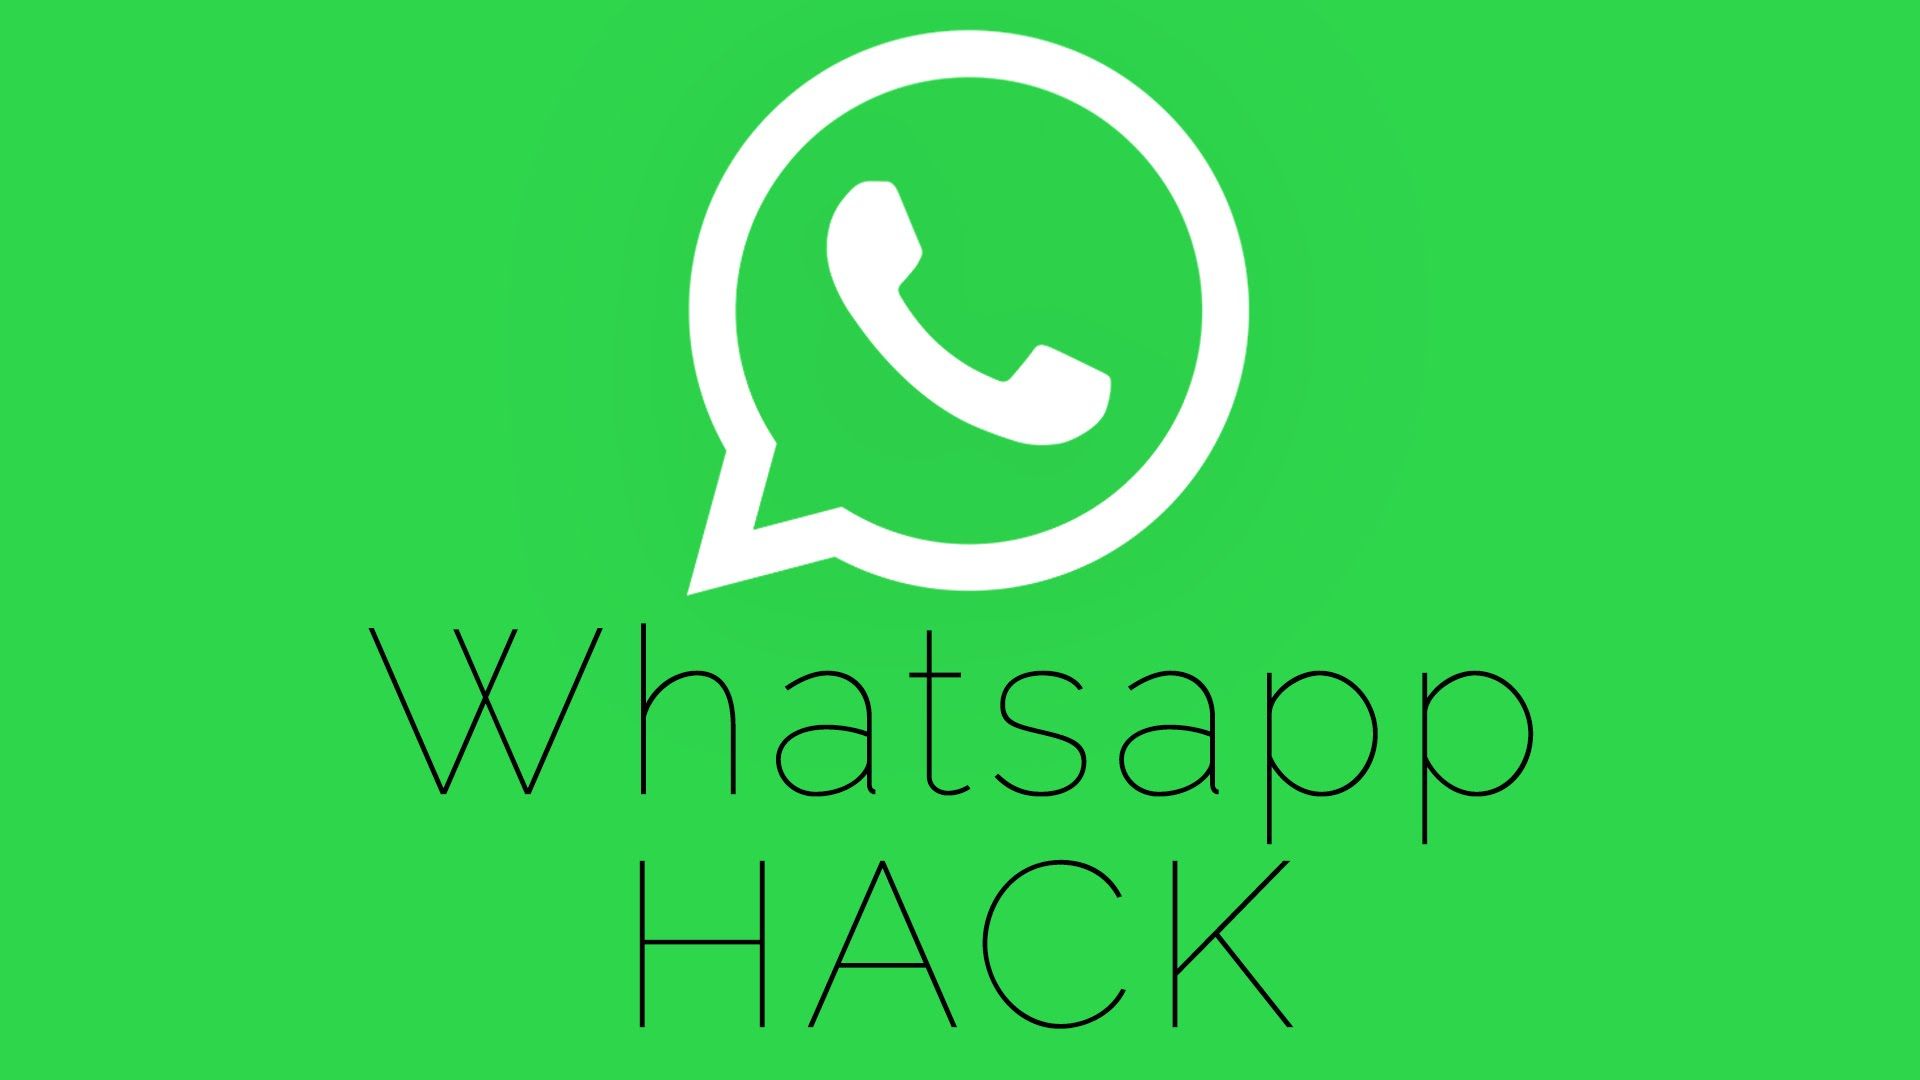 whatsapp hacked version without jailbreak on iphone using watusi